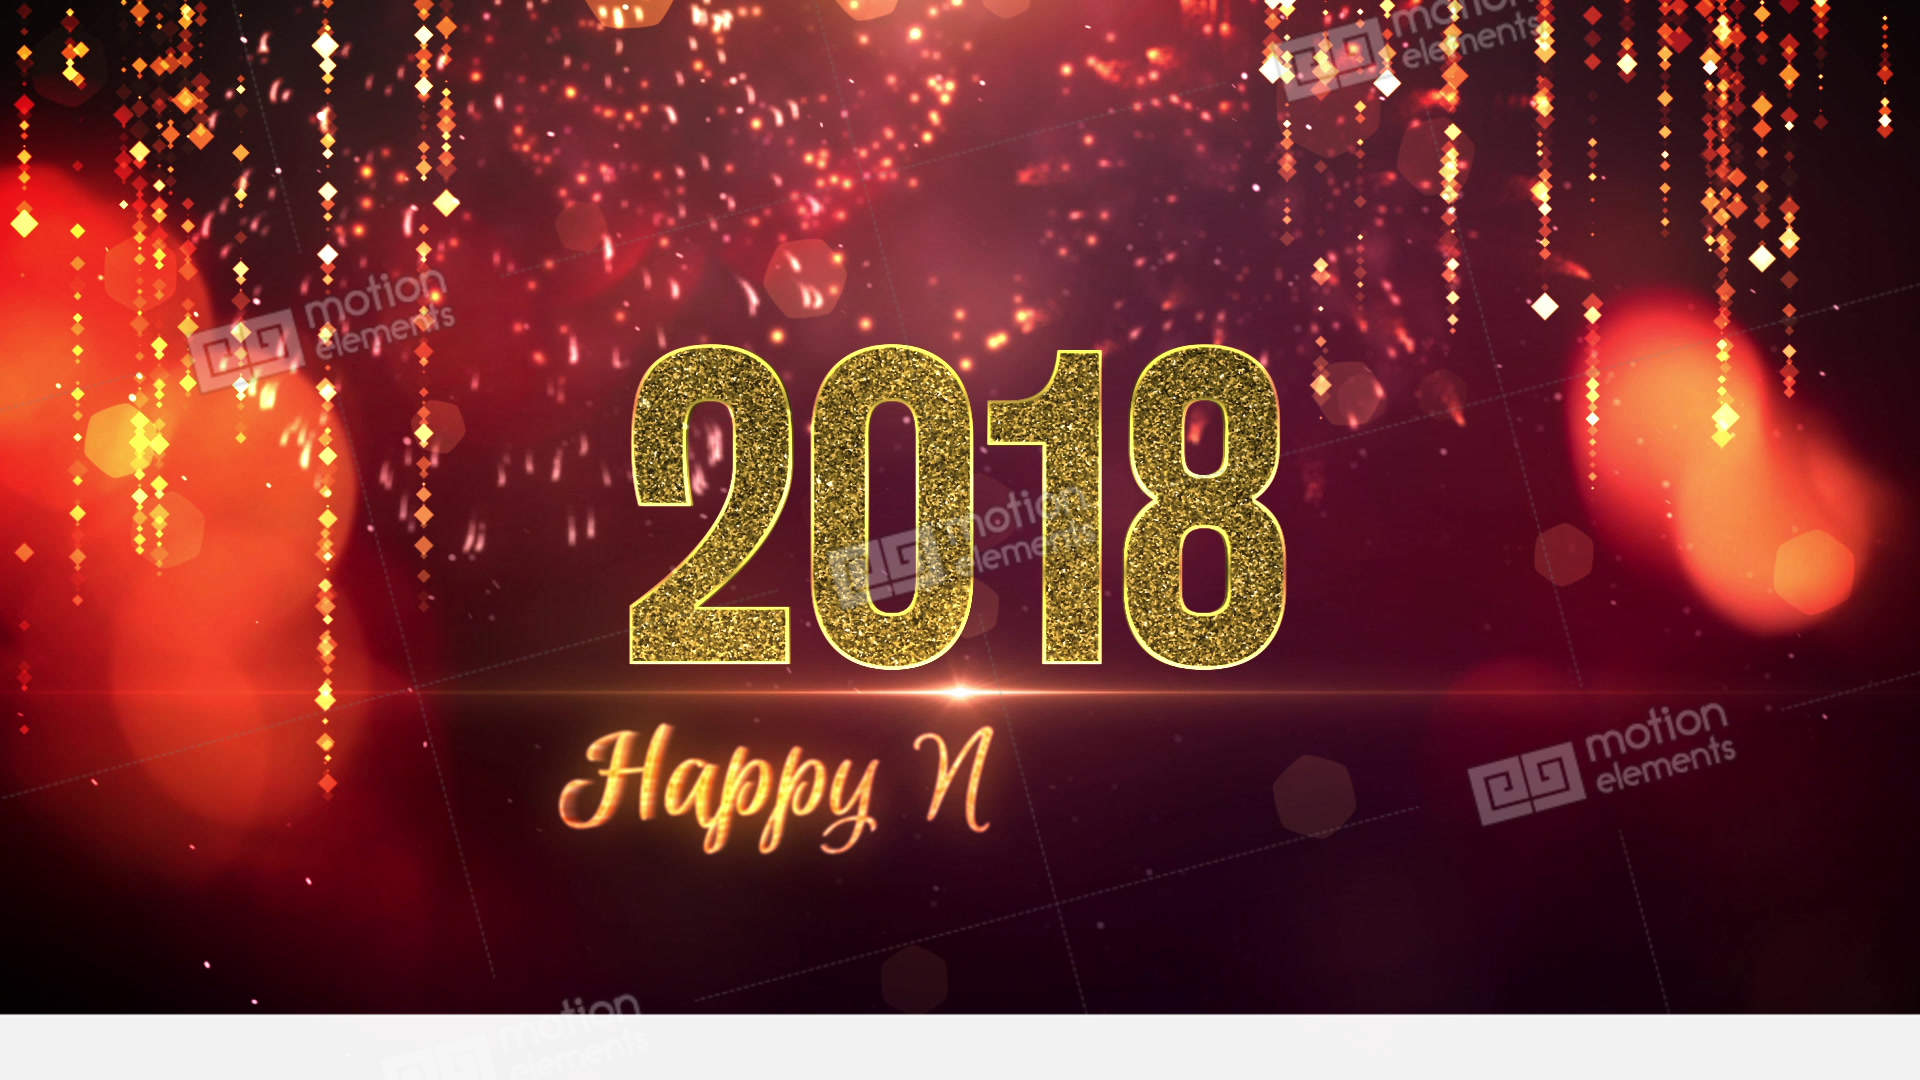 Happy new year 2018 animated Gif download hd Wallpaper video